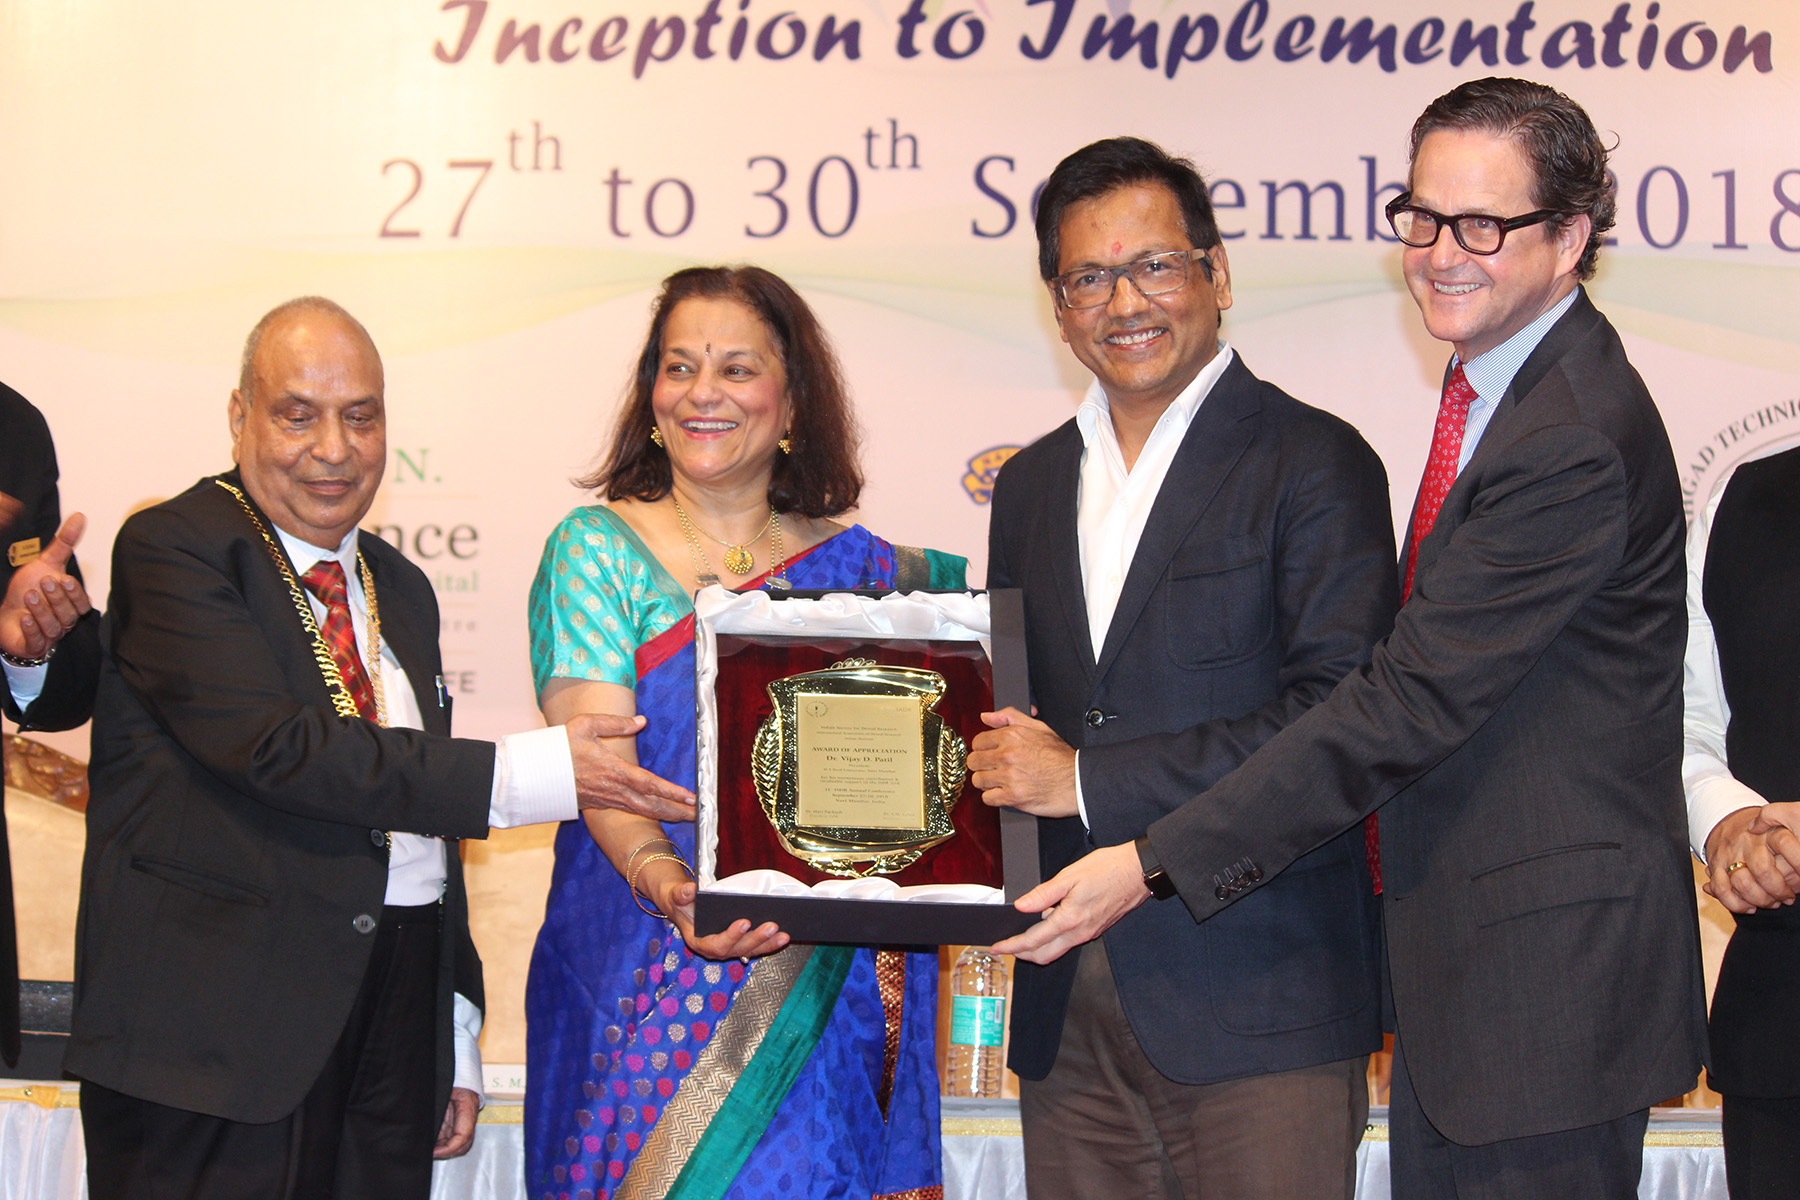 Prof Rena D'Souza, President, IADR presenting Award of Appreciation to Dr Vijay Patil, Chief Guest and Chancellor of Dr DY Patil University